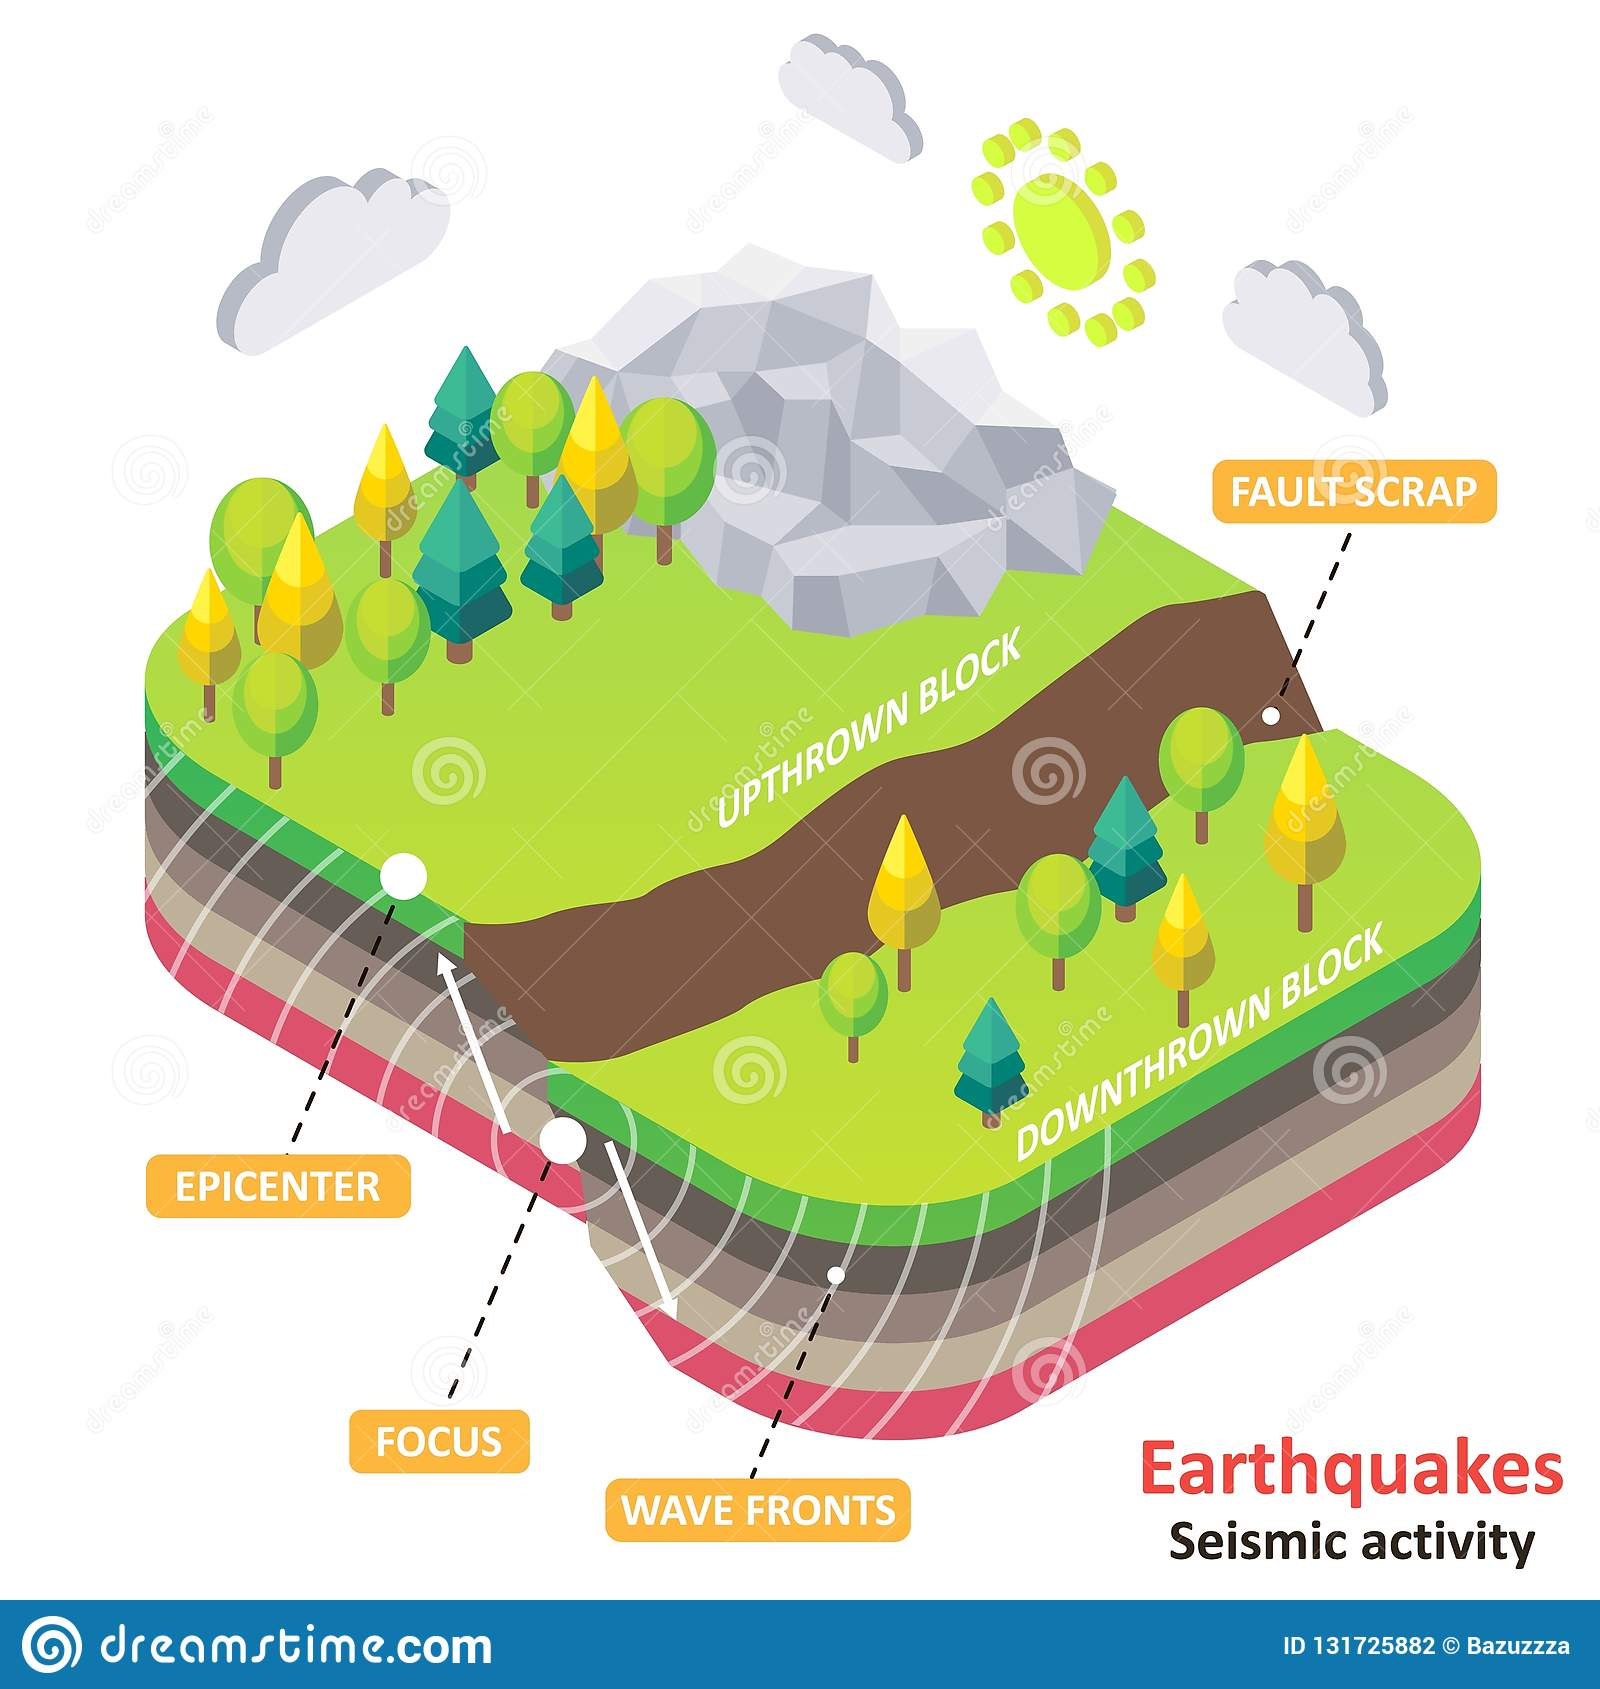 earthquake diagram with labels hall effect sensor or seismic activity vector isometric stock earth fault scrap epicenter focus and wavefronts natural disasters concept for educational